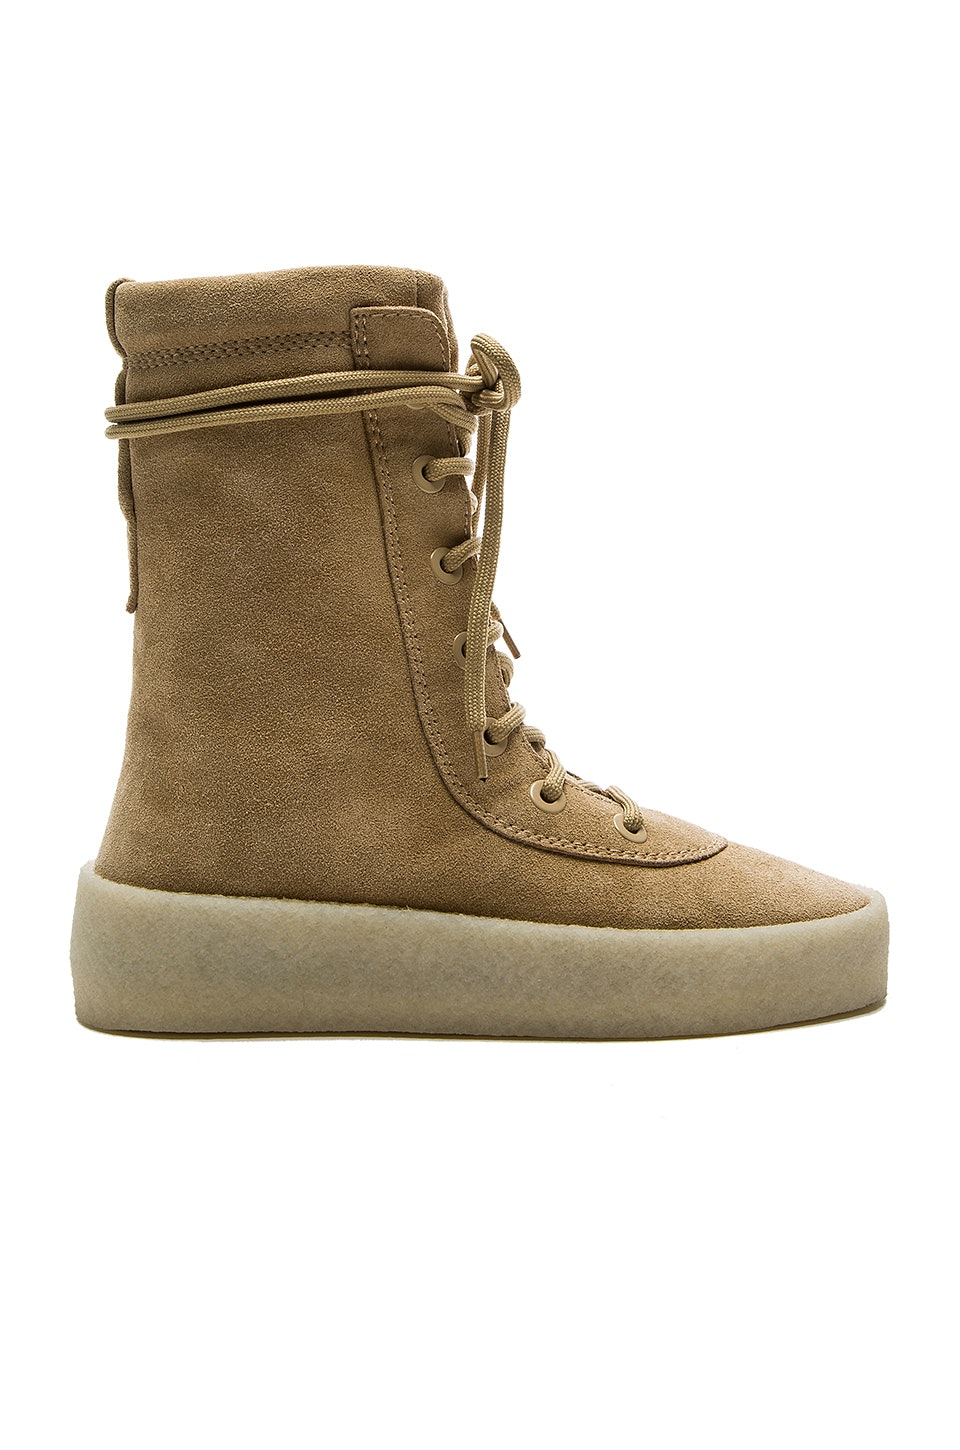 b6d538e6a When Does The Yeezy Season 2